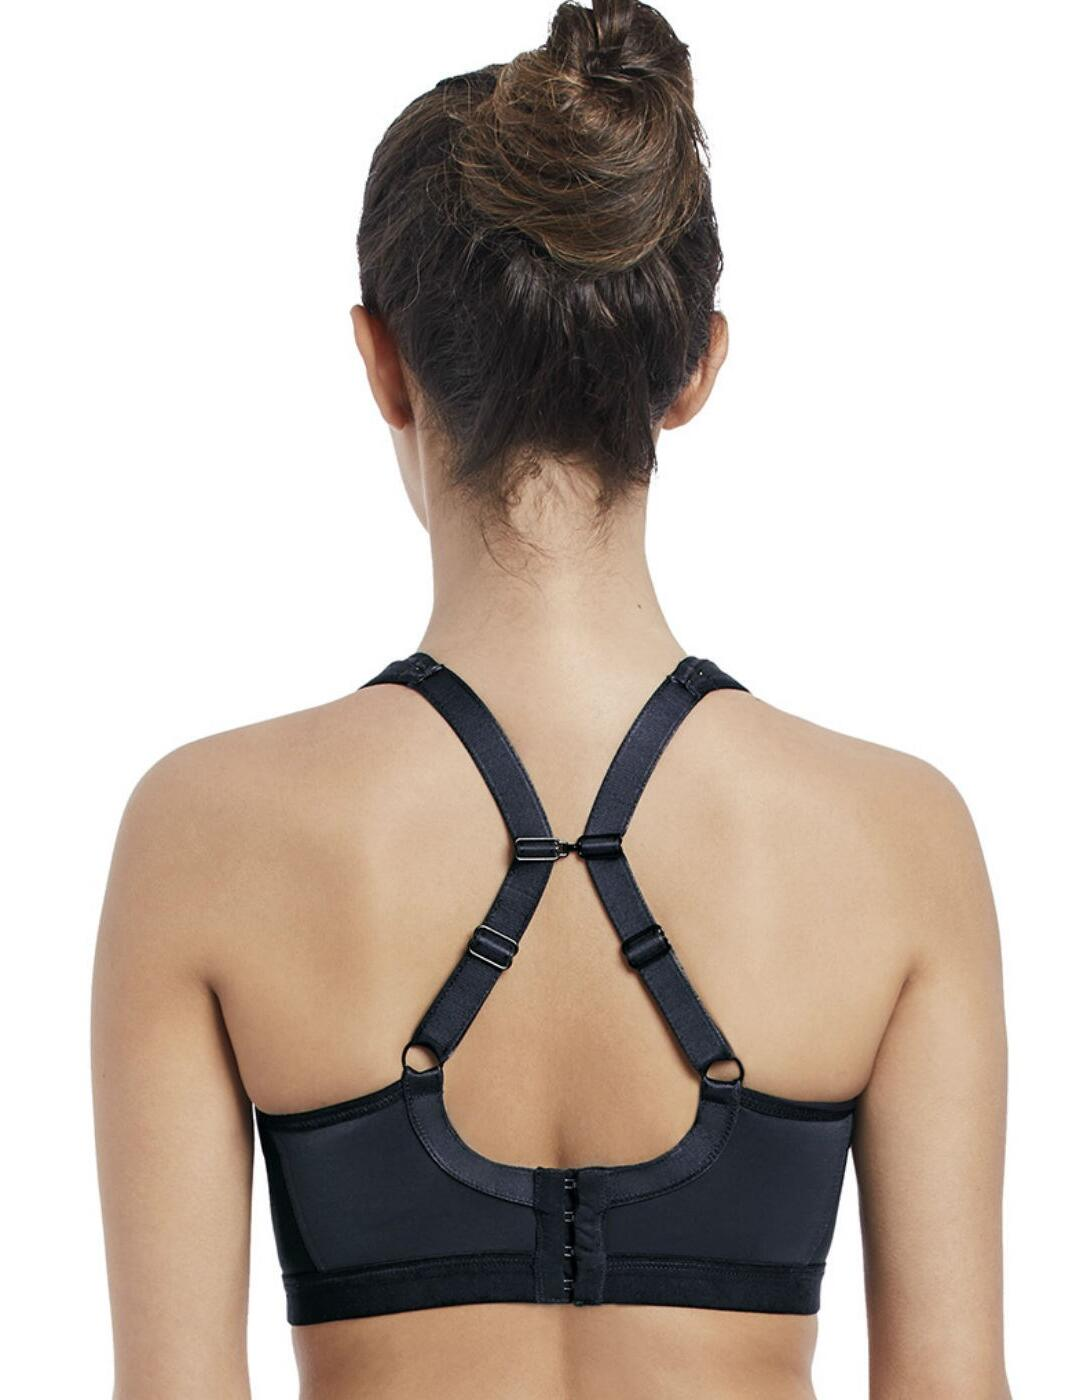 Details about  /Freya Active Force Sports Bra 4000 High Impact Non-Wired Womens Gym Bras